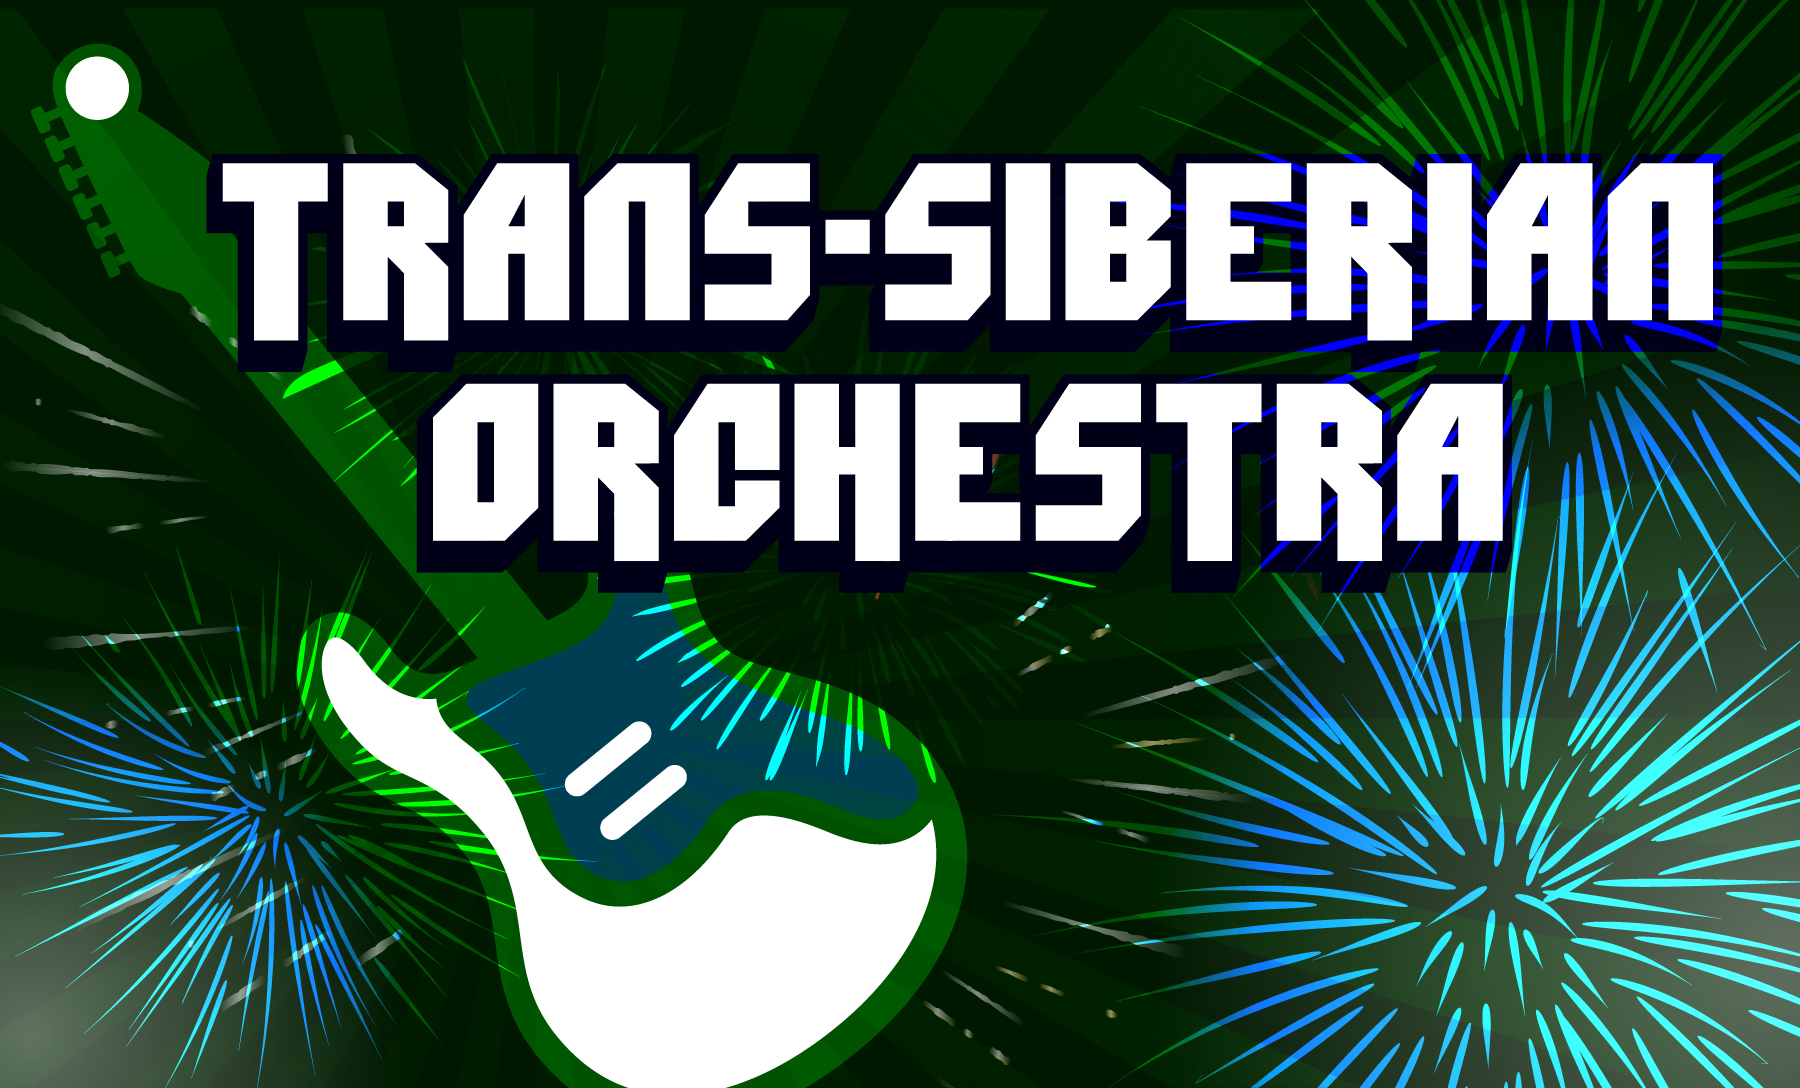 Trans Siberian Orchestra laser SHow, Holidays, Christmas, Columbia, Things to do